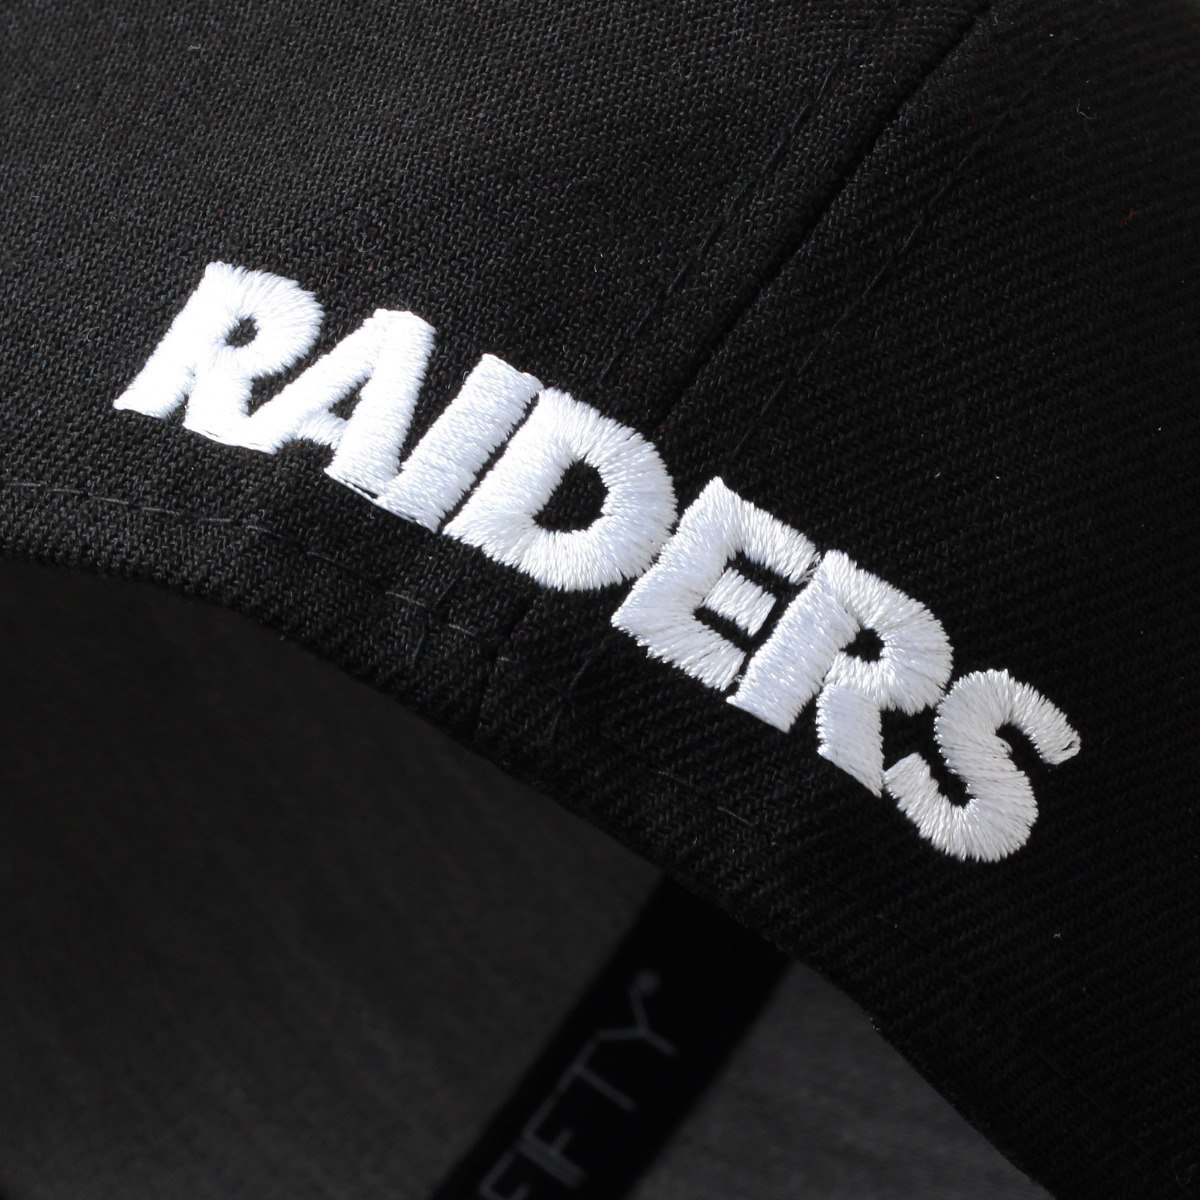 Cargando zoom... gorra new era nfl 59fifty oakland raiders méxico game-  negro 8cac29fcb3d